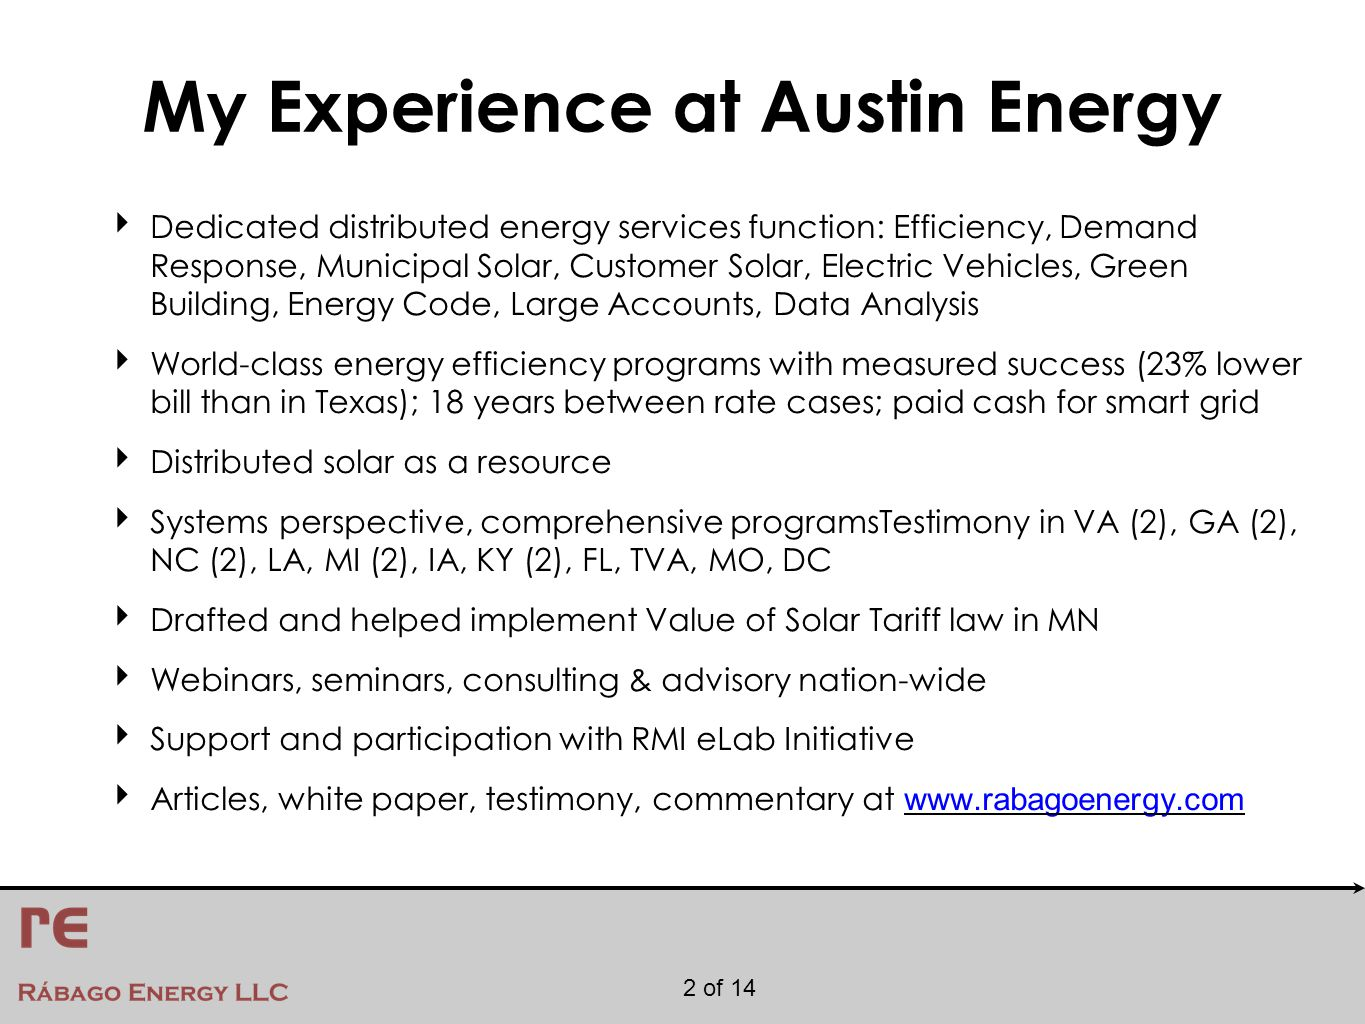 2 of 14 My Experience at Austin Energy ‣ Dedicated distributed energy services function: Efficiency, Demand Response, Municipal Solar, Customer Solar, Electric Vehicles, Green Building, Energy Code, Large Accounts, Data Analysis ‣ World-class energy efficiency programs with measured success (23% lower bill than in Texas); 18 years between rate cases; paid cash for smart grid ‣ Distributed solar as a resource ‣ Systems perspective, comprehensive programsTestimony in VA (2), GA (2), NC (2), LA, MI (2), IA, KY (2), FL, TVA, MO, DC ‣ Drafted and helped implement Value of Solar Tariff law in MN ‣ Webinars, seminars, consulting & advisory nation-wide ‣ Support and participation with RMI eLab Initiative ‣ Articles, white paper, testimony, commentary at www.rabagoenergy.com www.rabagoenergy.com